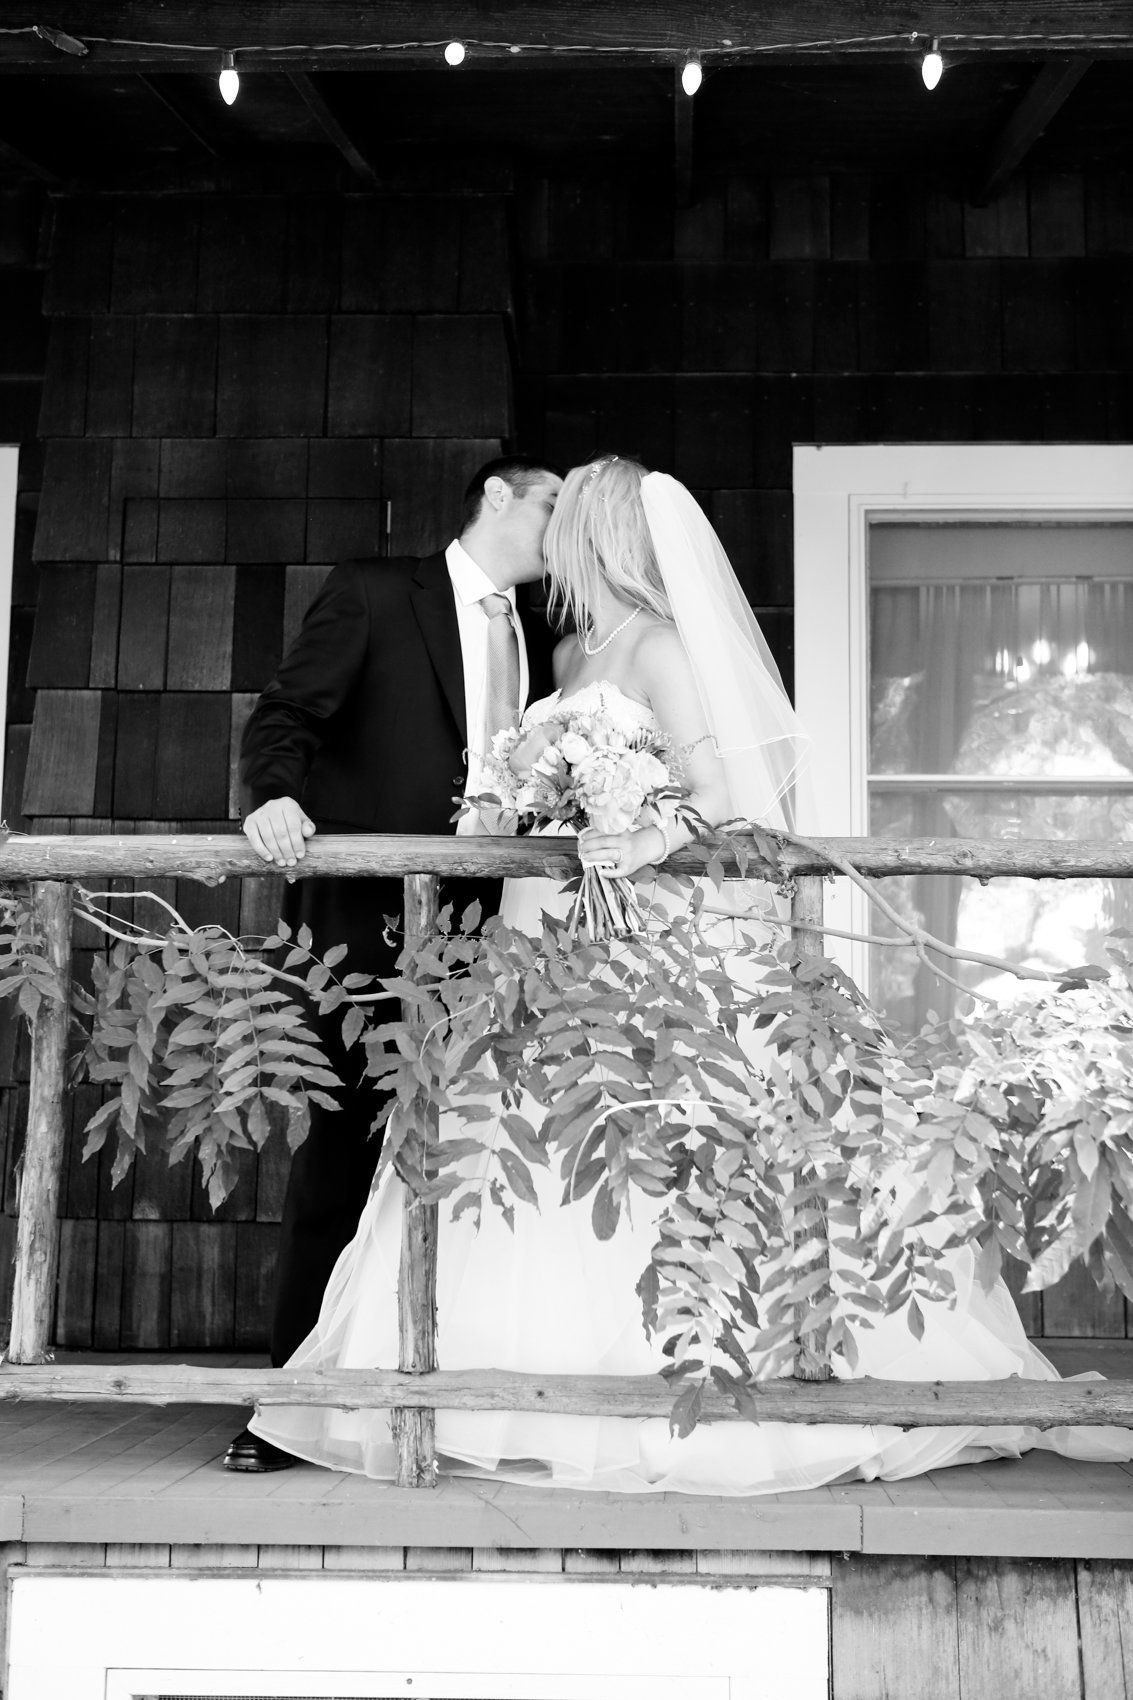 Wedding photography black and white woodsy setting greenery and rustic elements